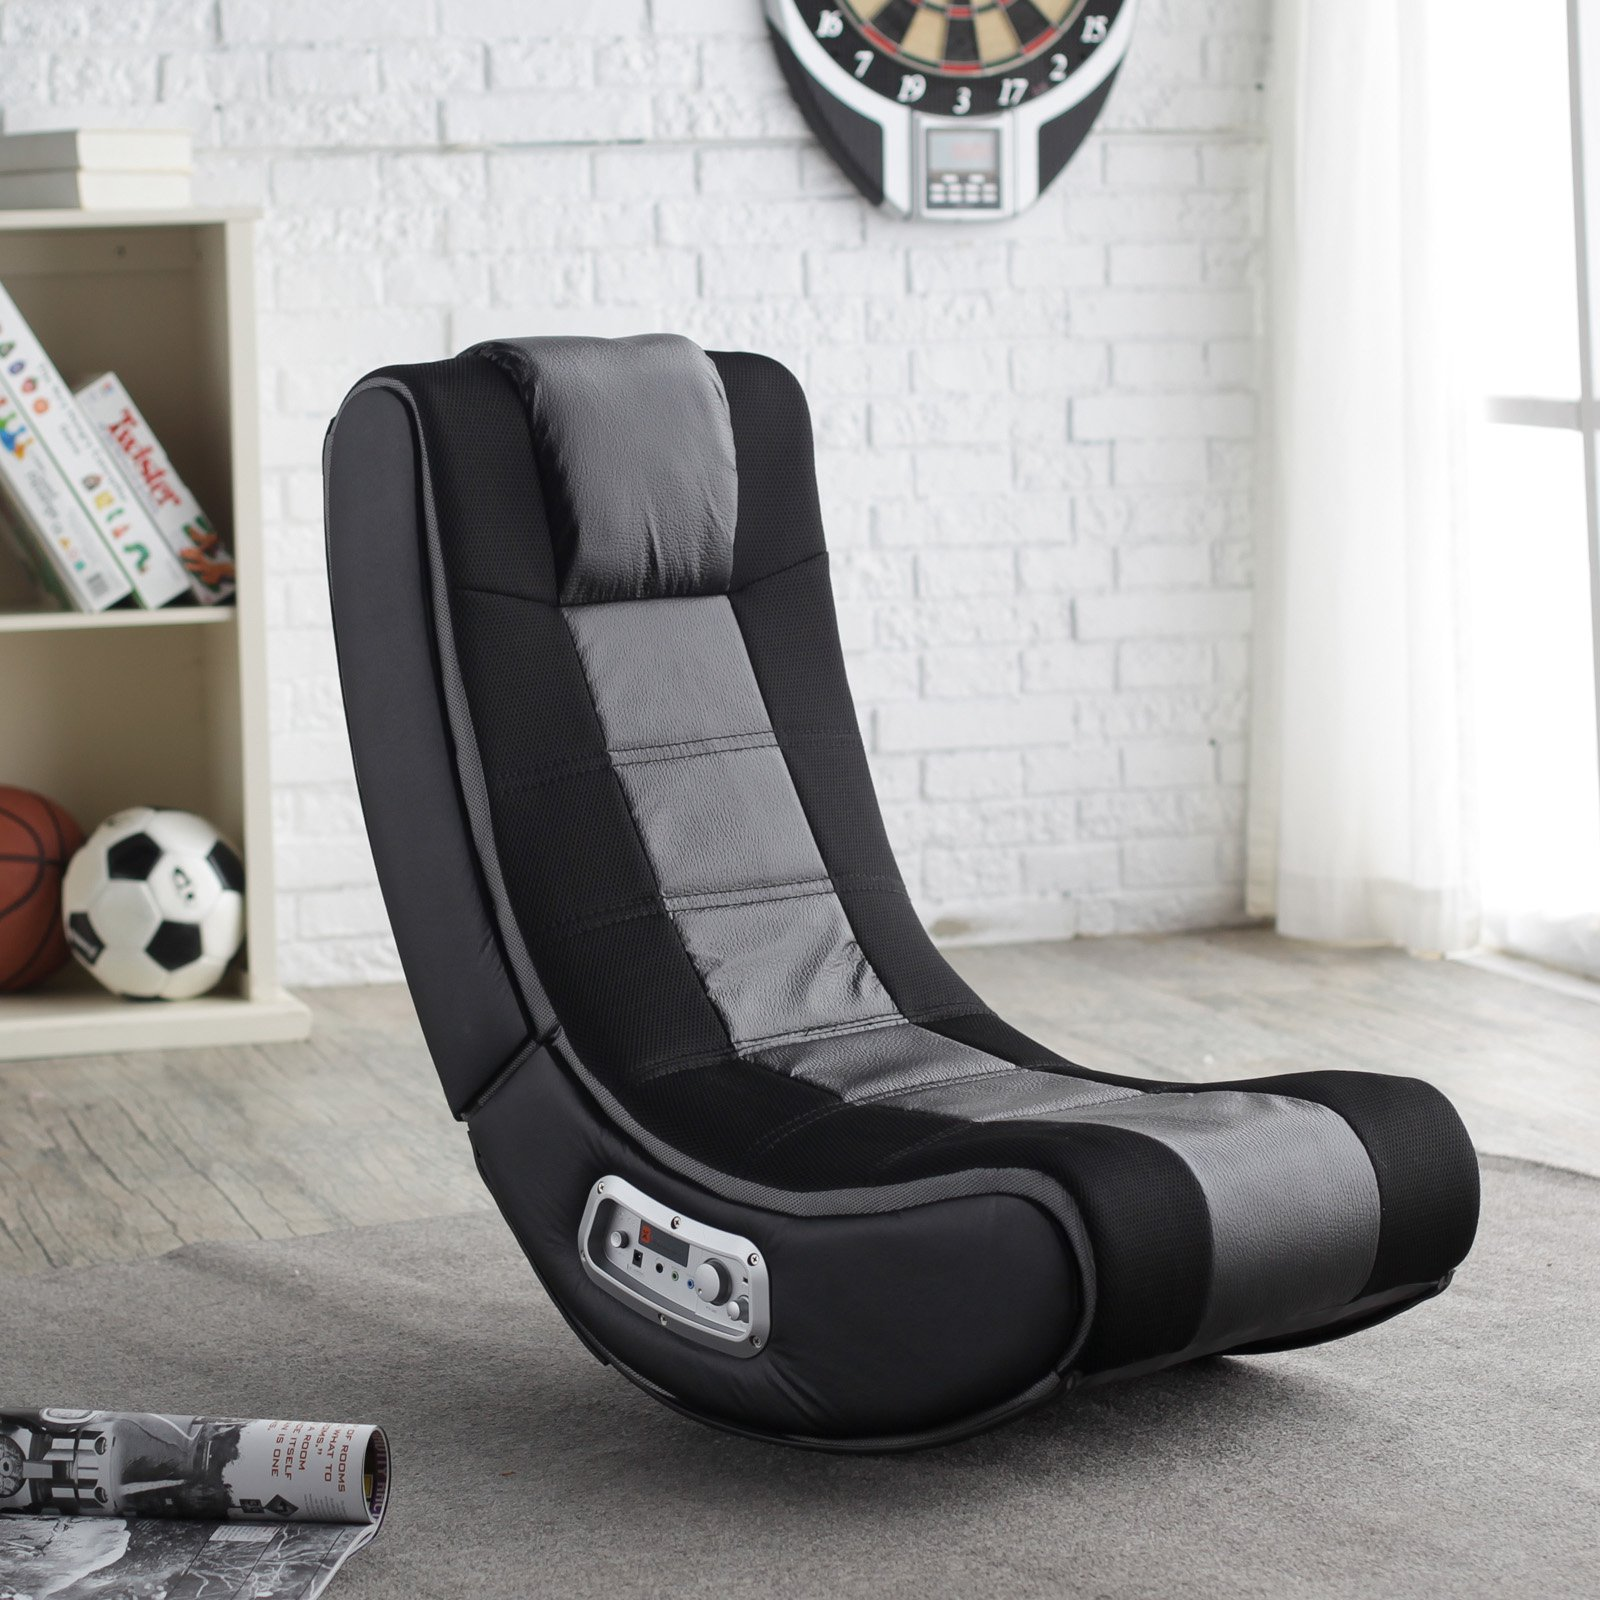 Xbox One Game Chair Wireless Gaming Chairs For Xbox 360 Home Furniture Design